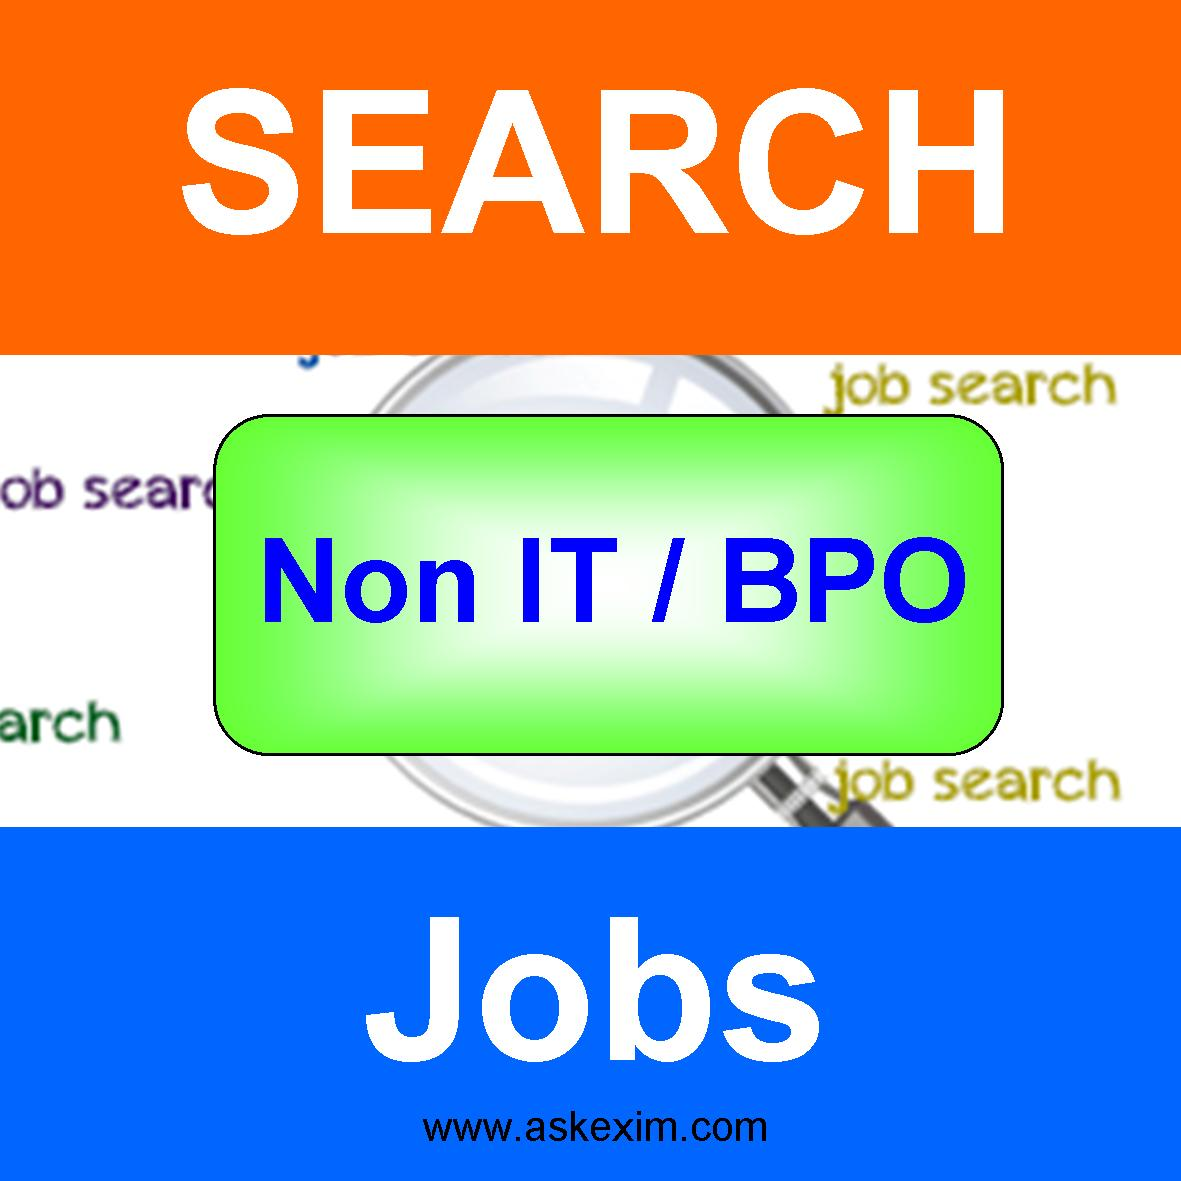 Search Non IT / BPO Jobs